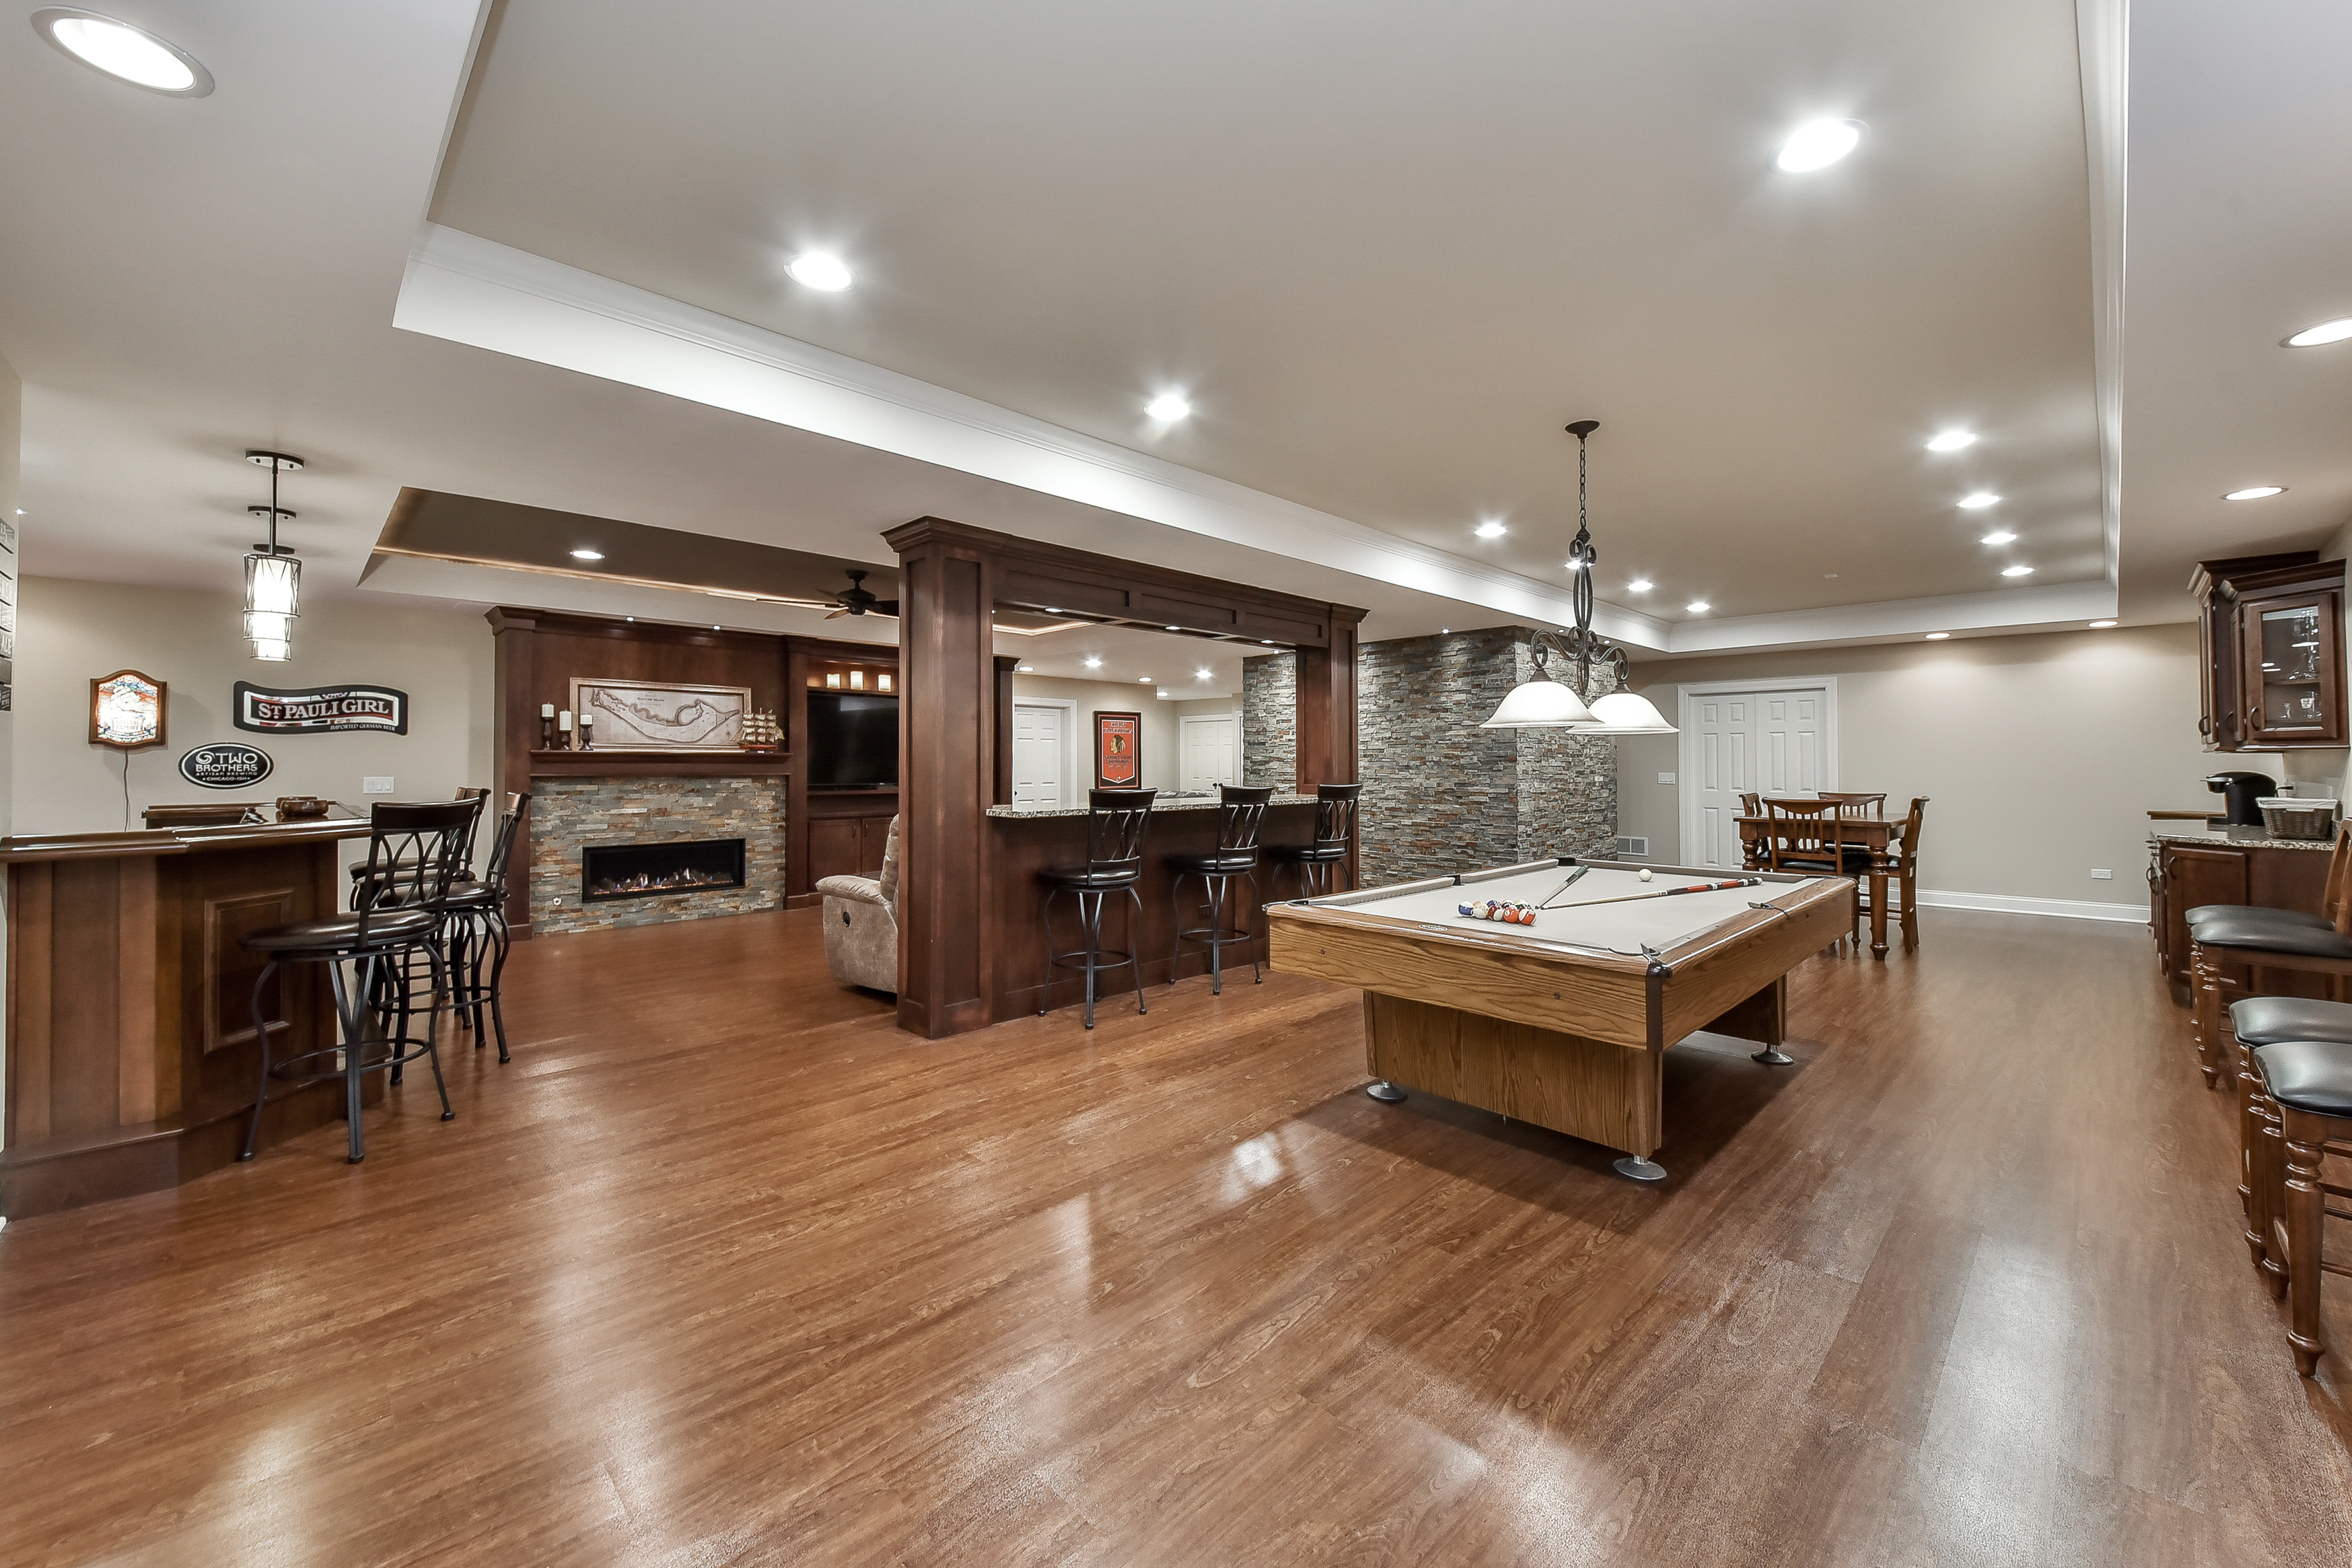 Basement Heating Options to Keep Your Family Warm & Comfy - Sebring Design Build